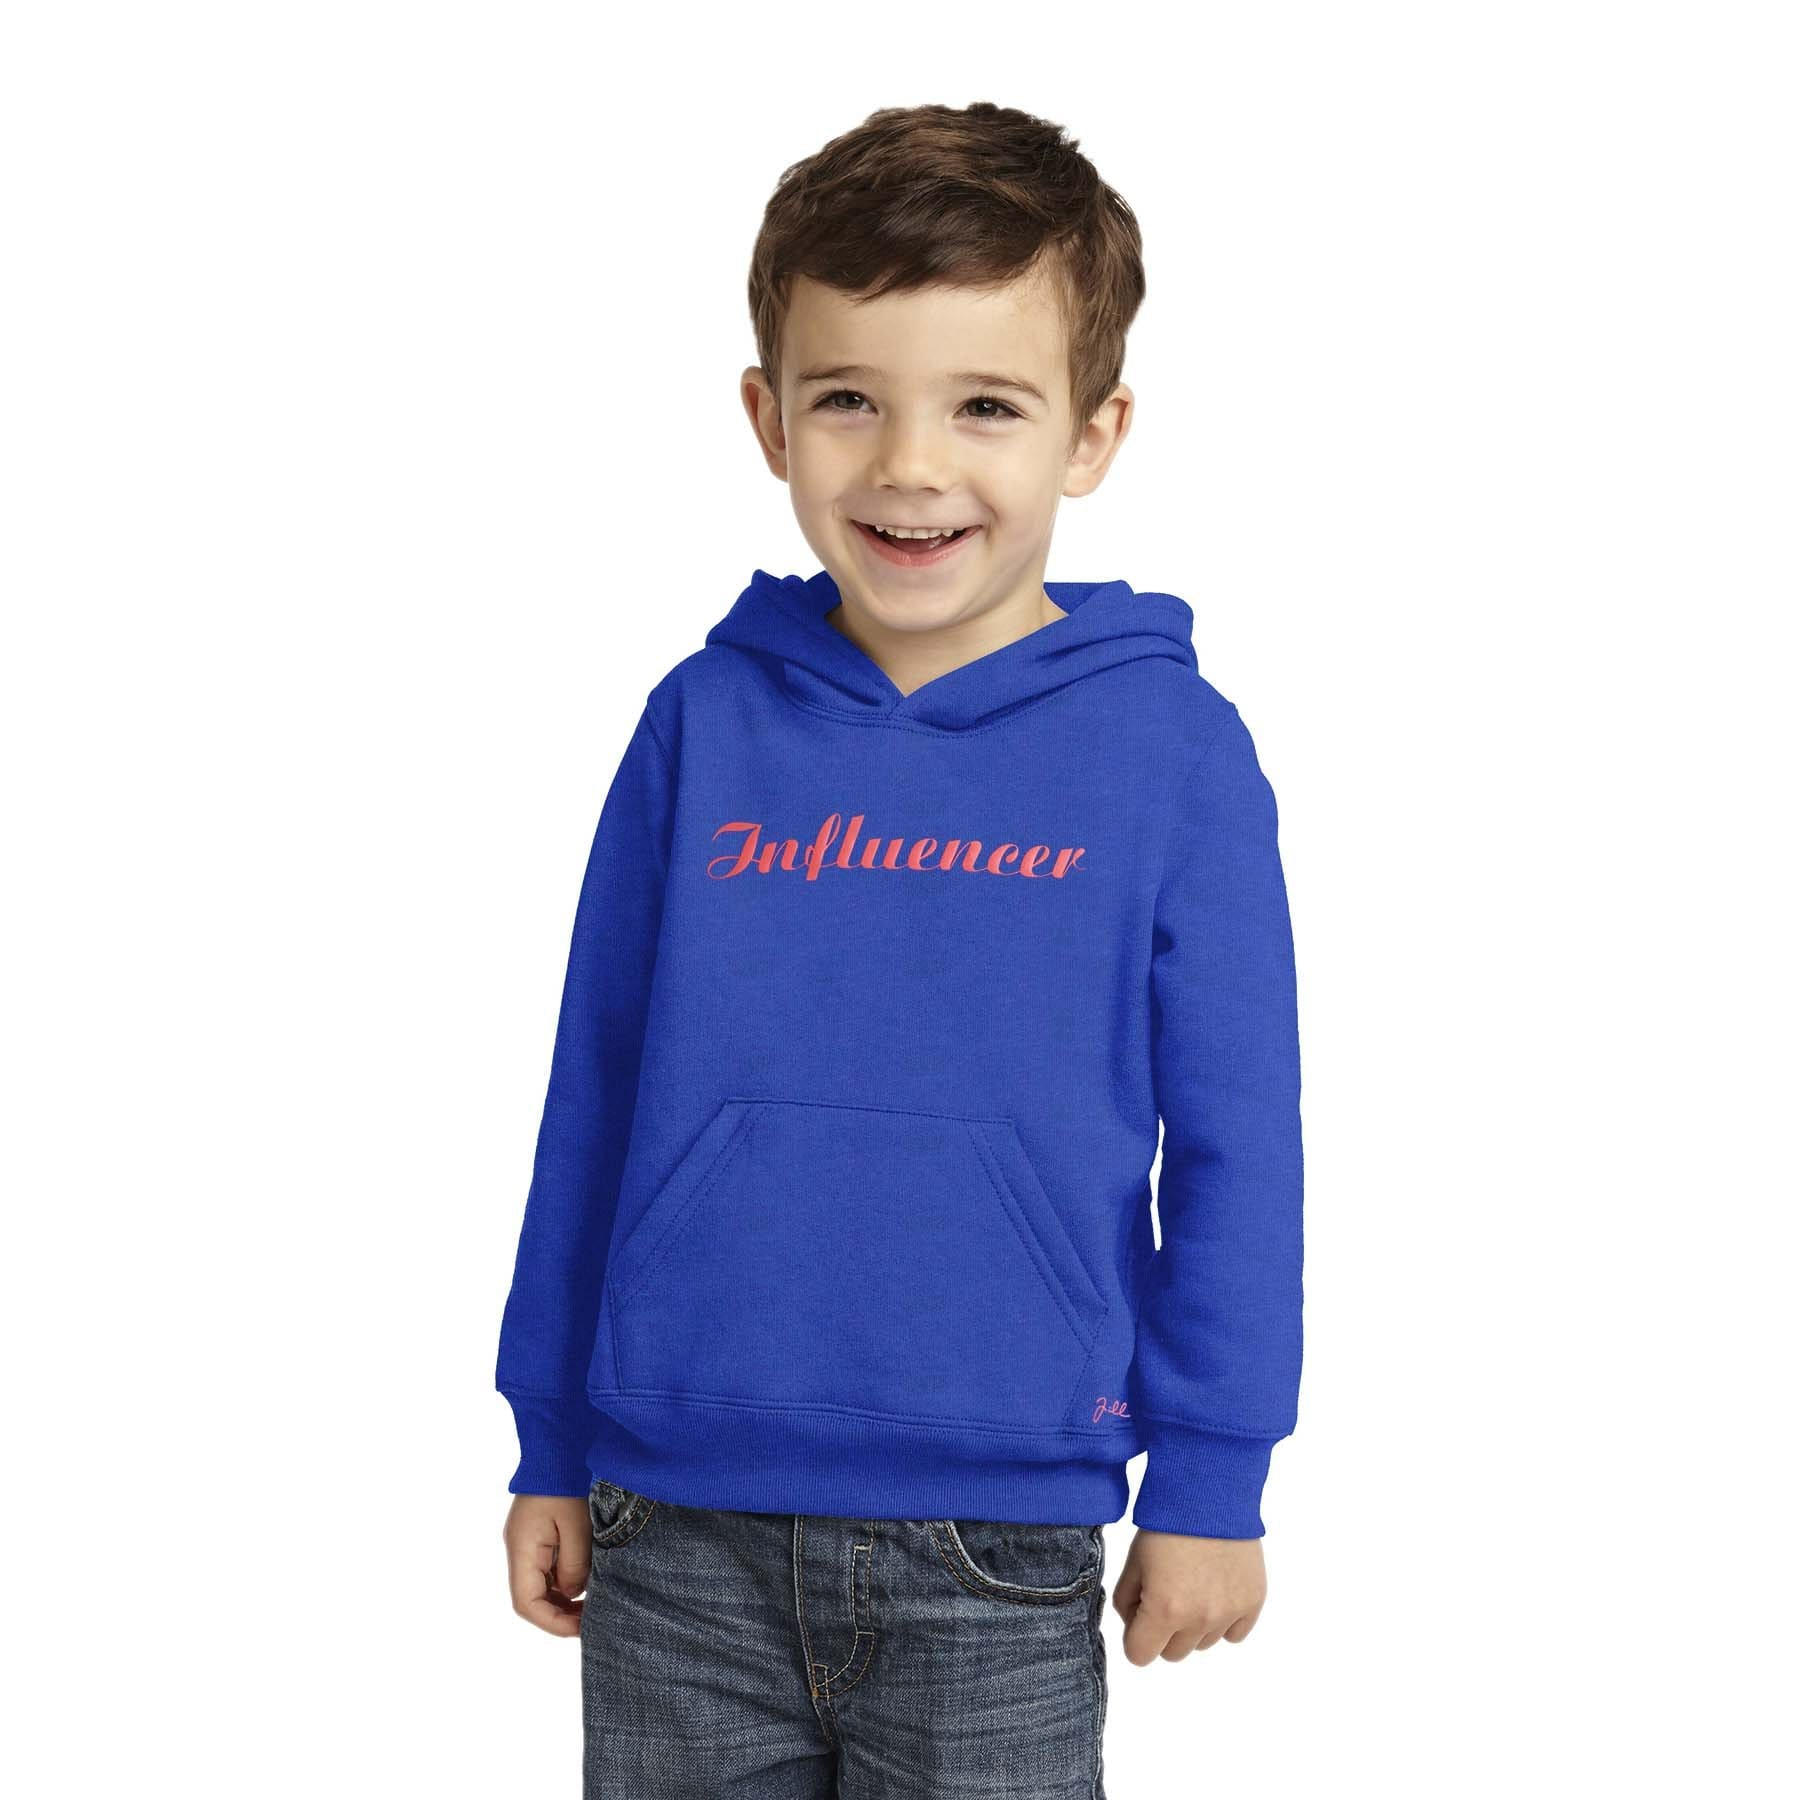 Henry James Boy's Zipper Hoodie Royal Blue / 11-12 Years Boy's Henry James Influencer Pullover HOODIE